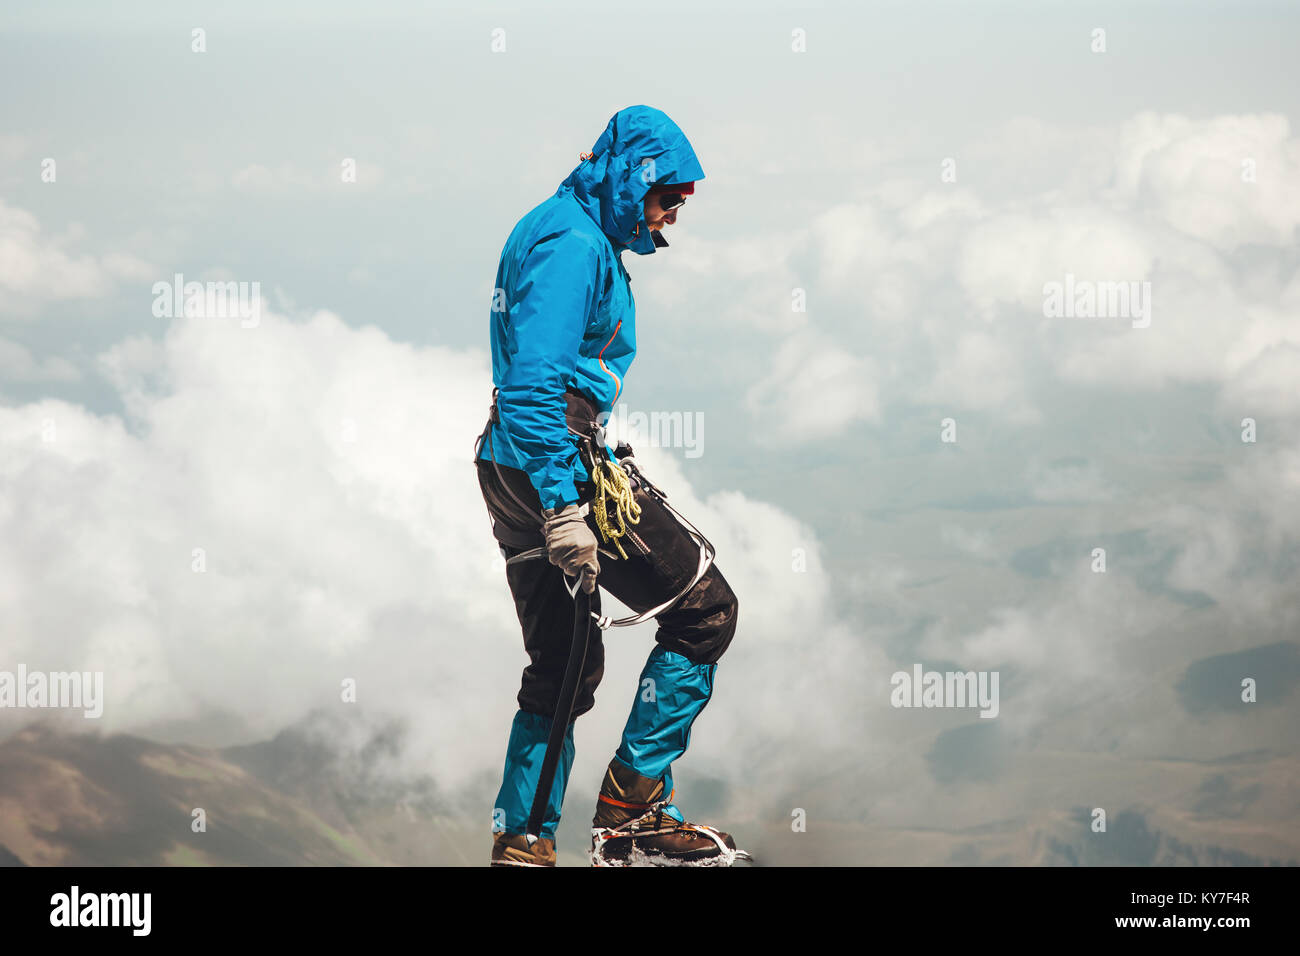 Man climbing to mountain summit Travel Lifestyle concept adventure active vacations outdoor mountaineering sport - Stock Image